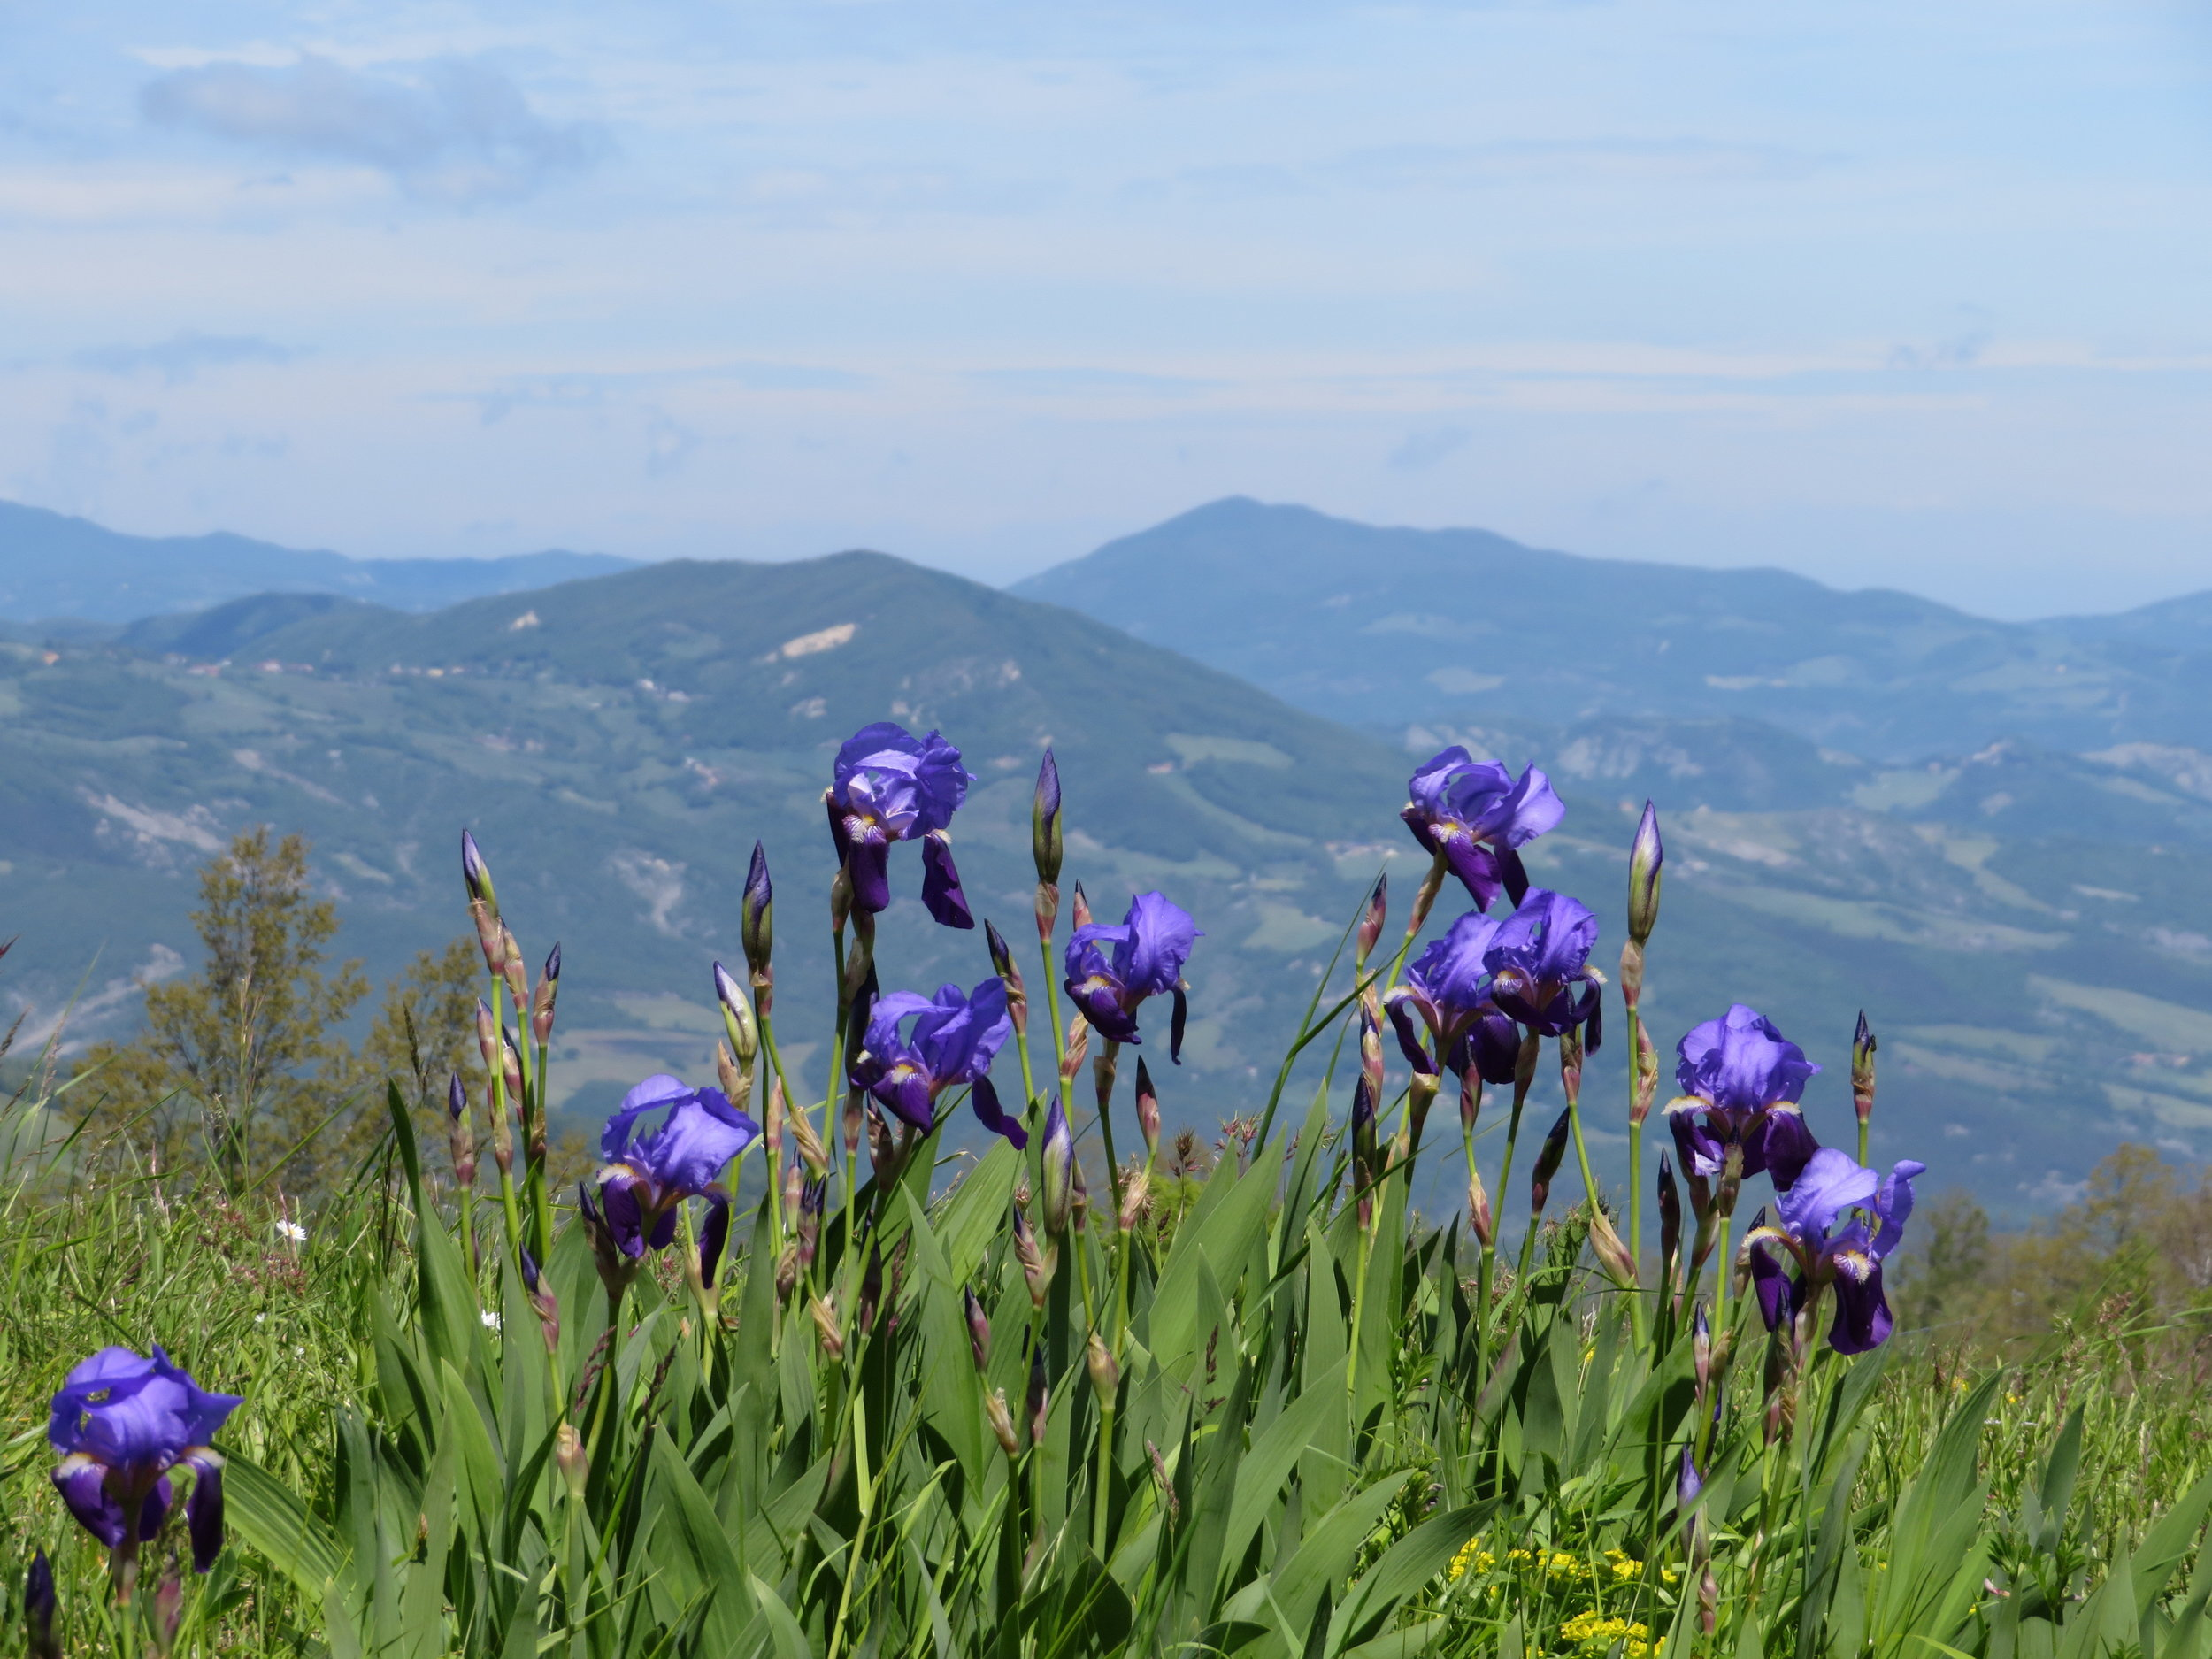 Walking from La Cisa to Cassio in the Tuscan Apennines